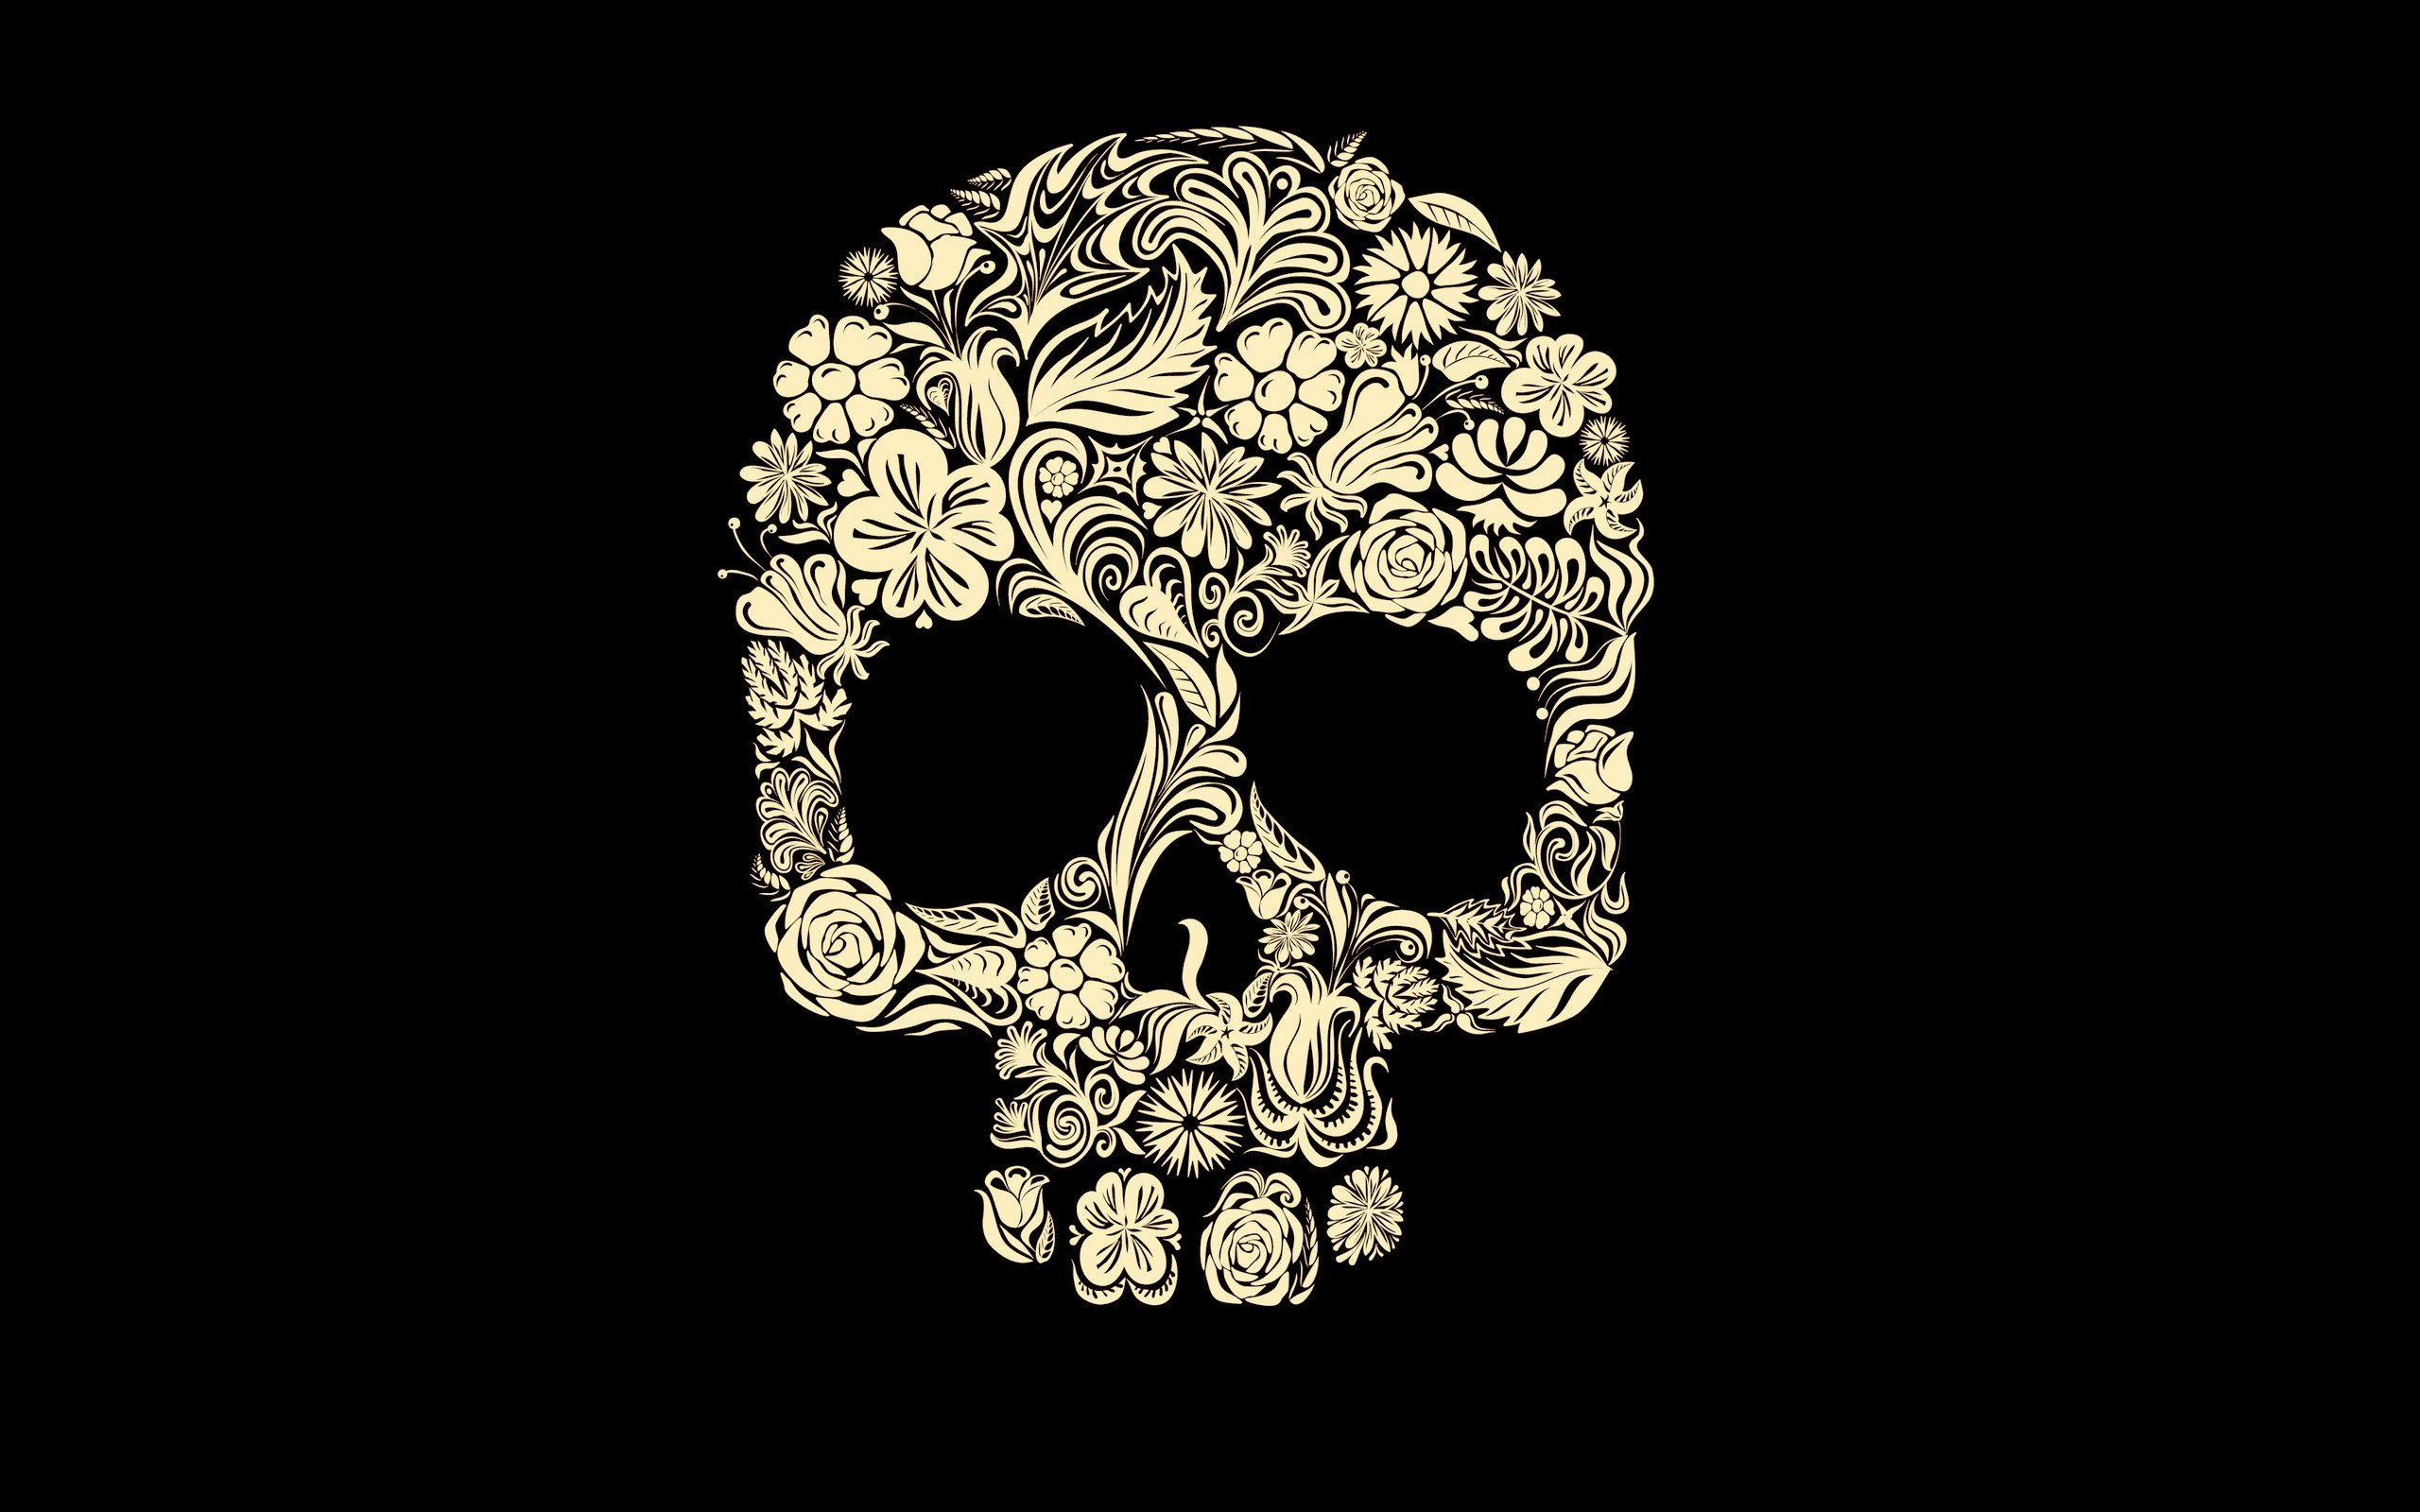 Dark Skull Wallpaper 2560x1600 Dark Skull 2560x1600